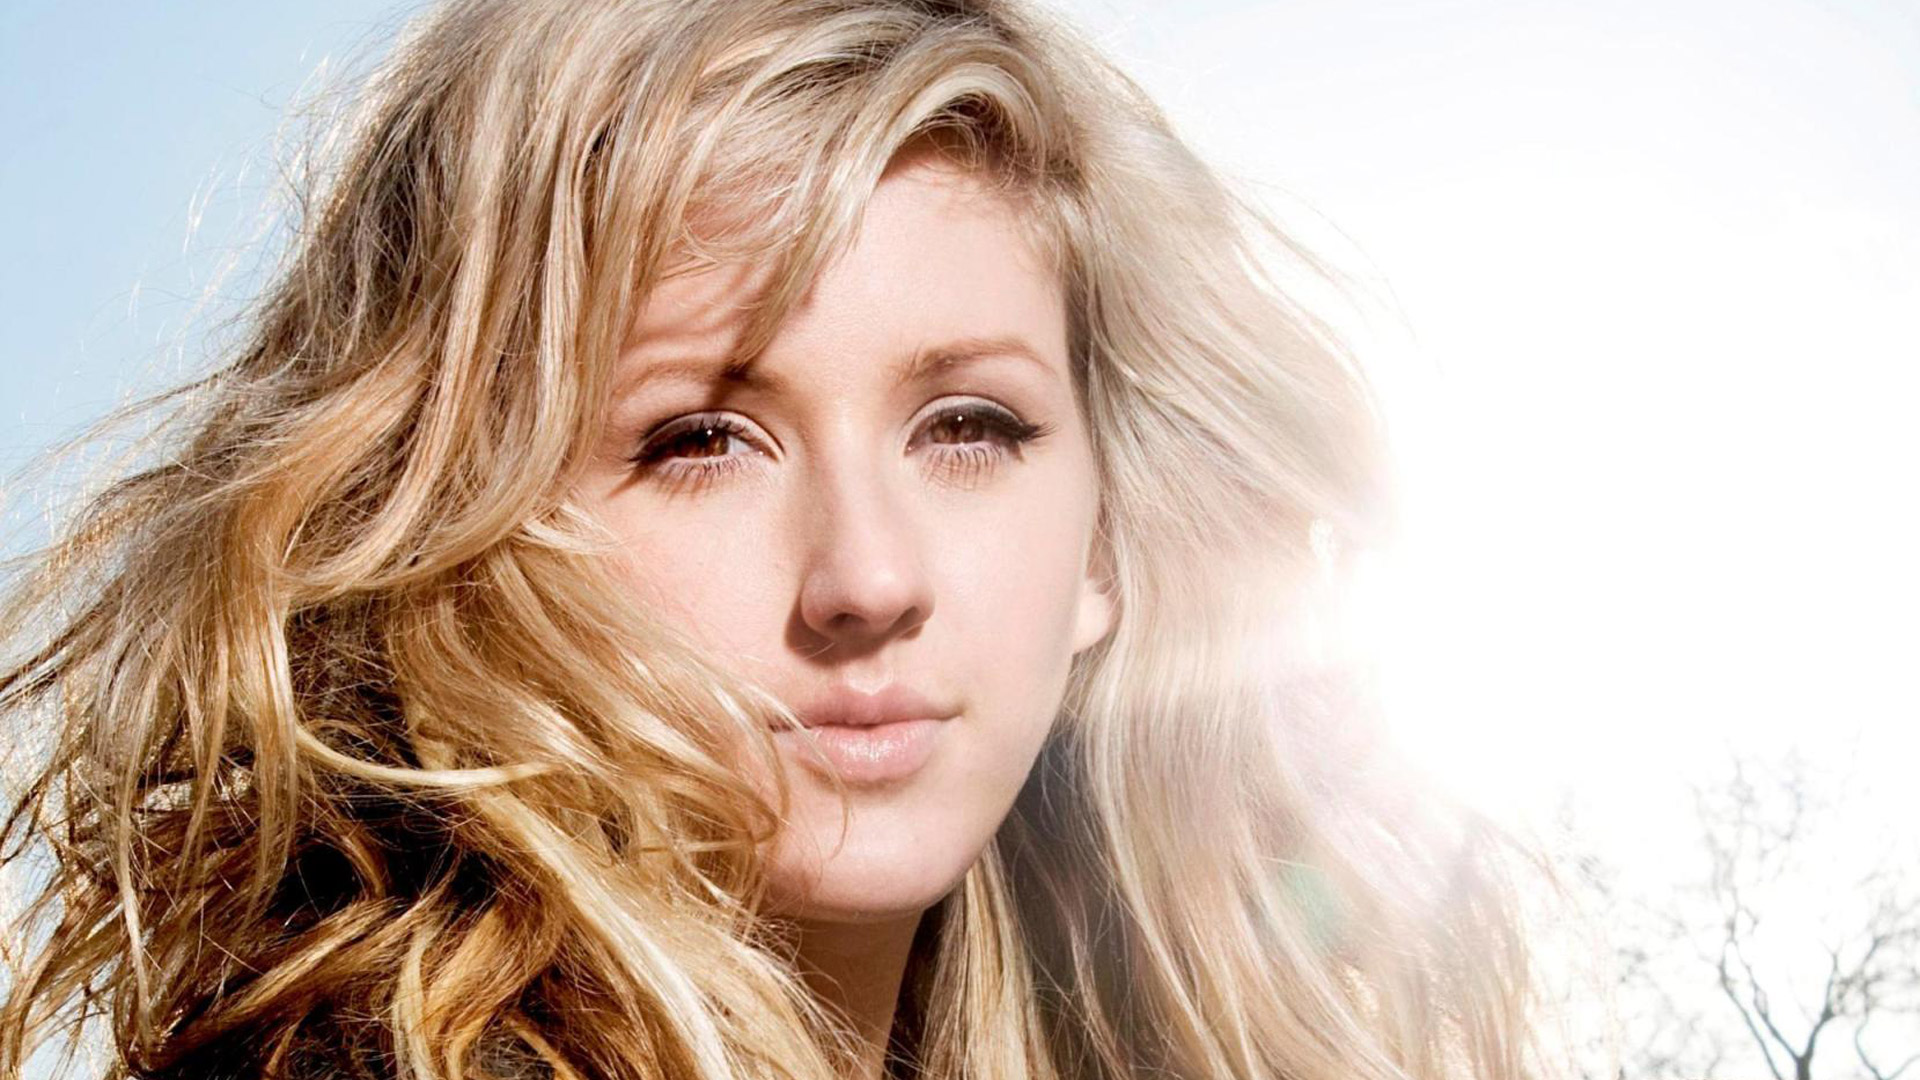 Beautiful Ellie Goulding Wallpaper ...